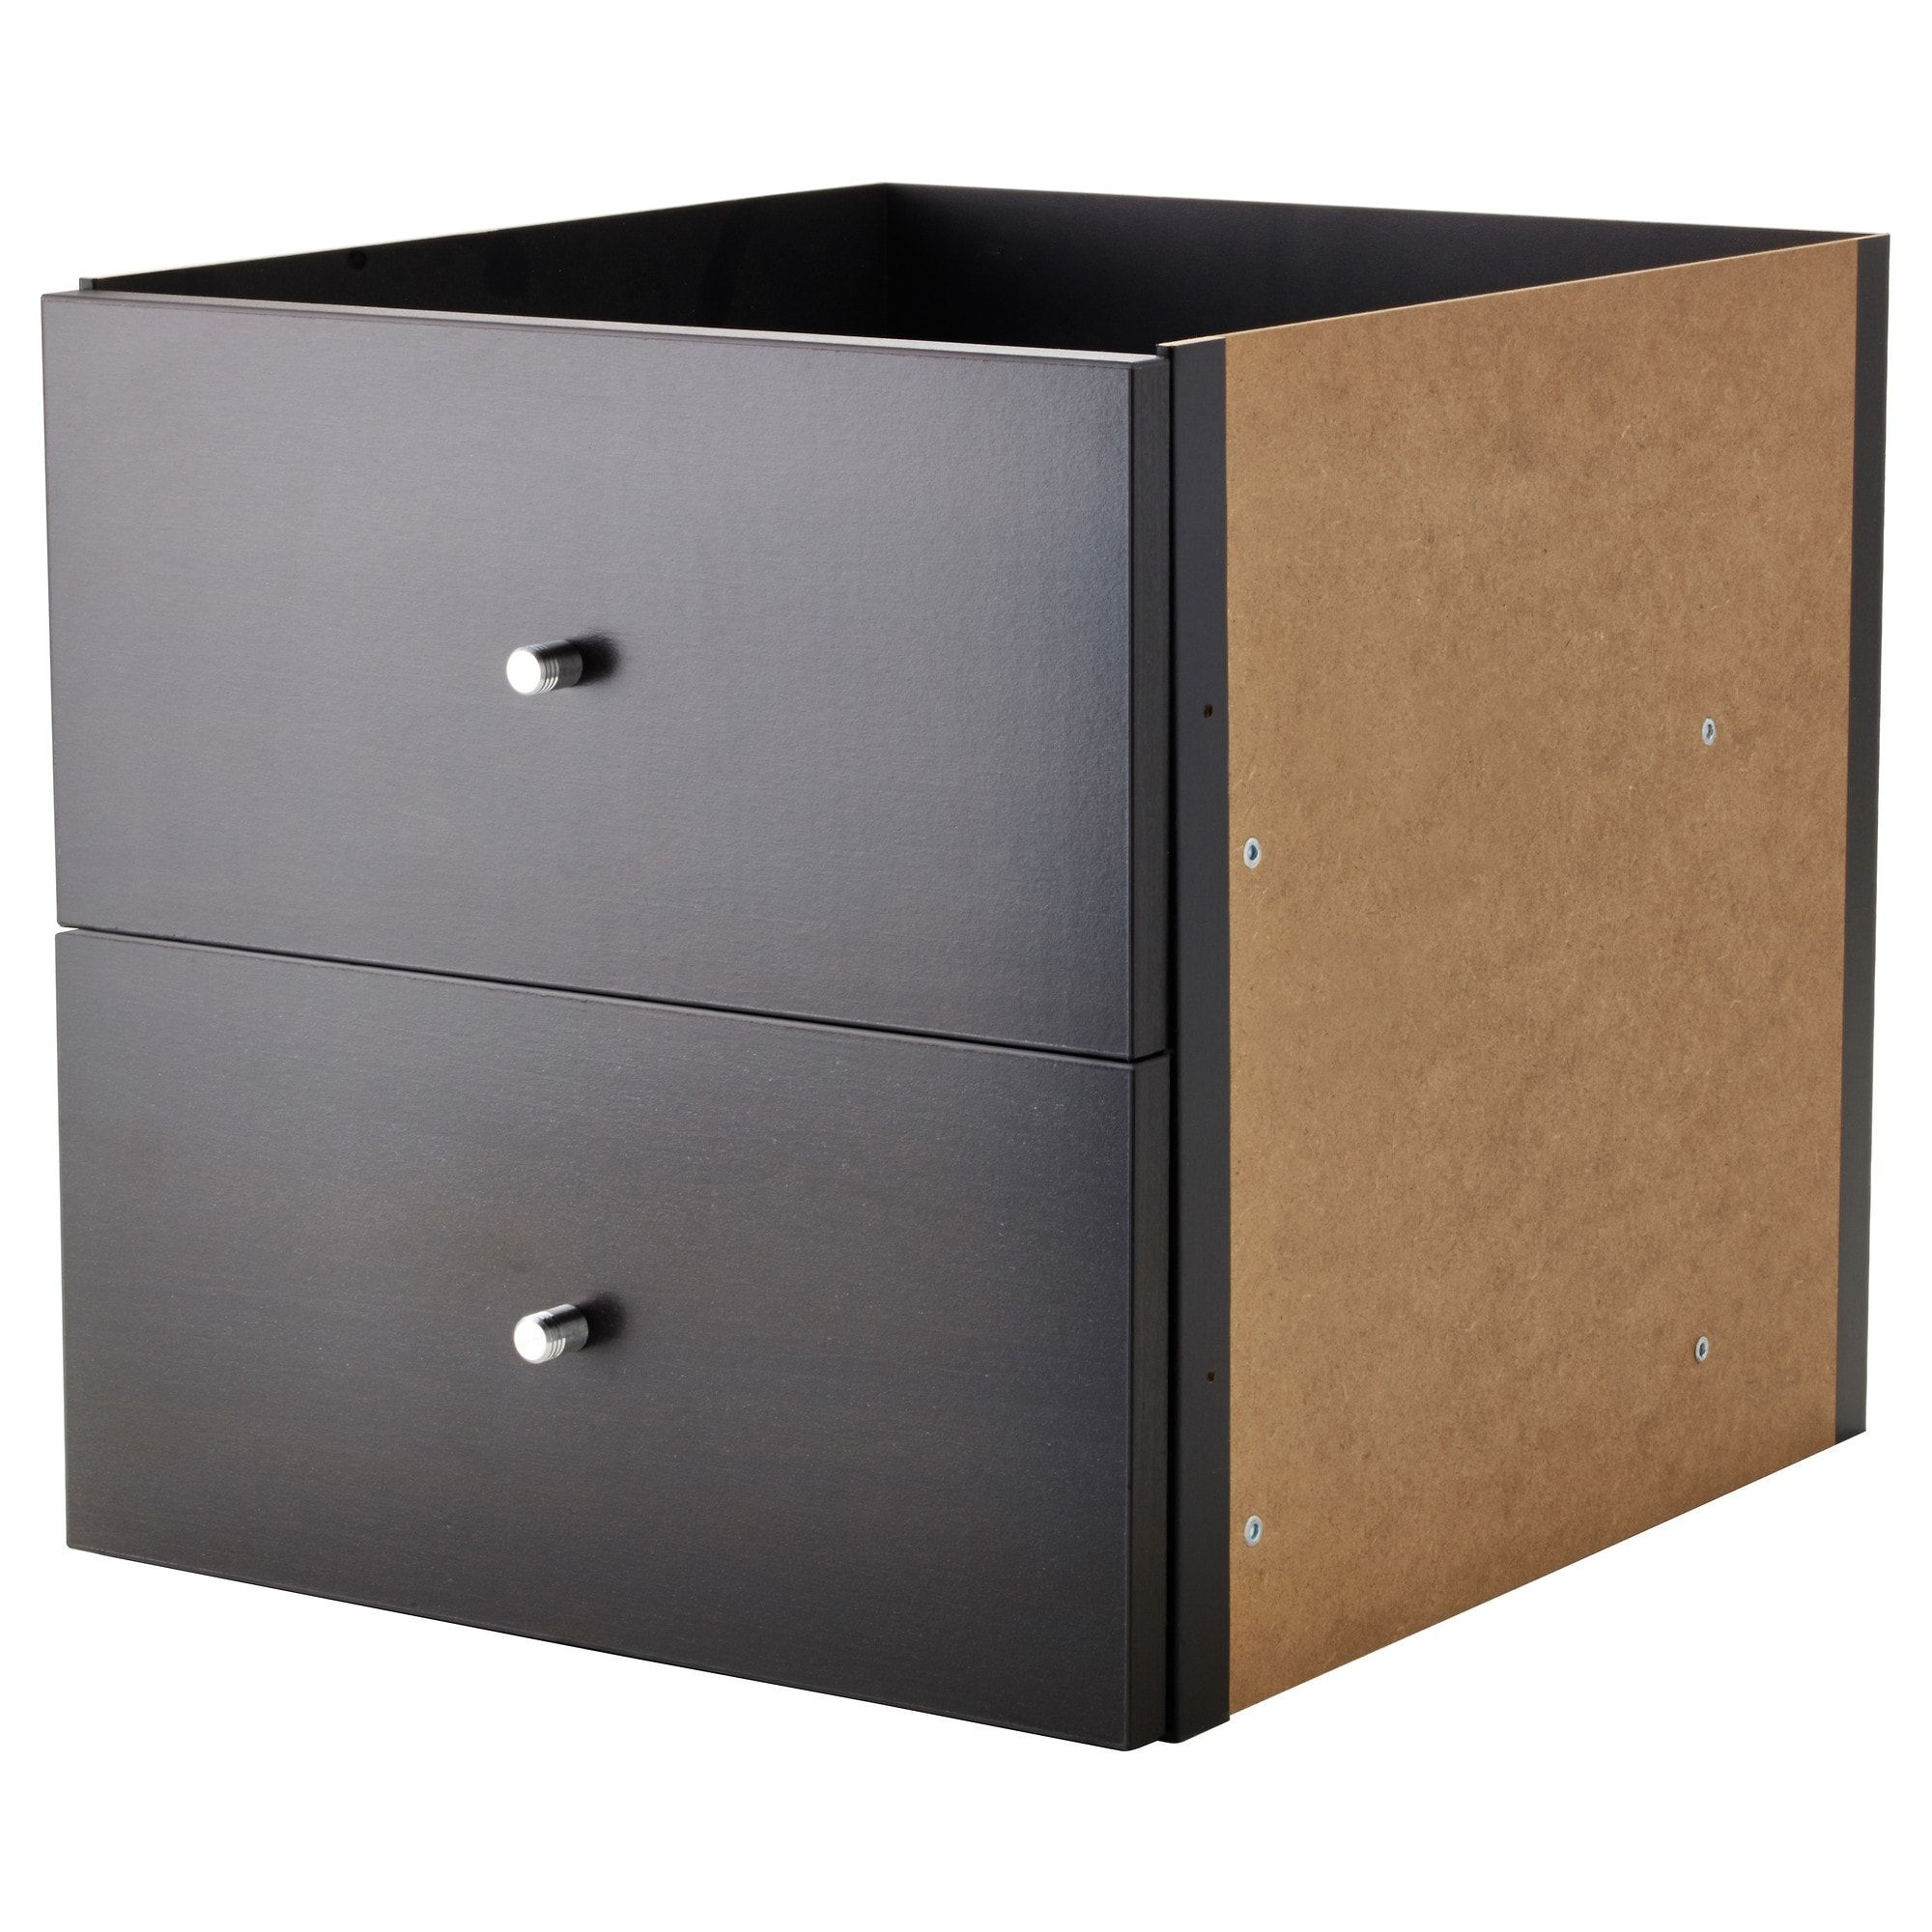 kallax insert with 2 drawers black-brown ikea | shedroom | pinterest